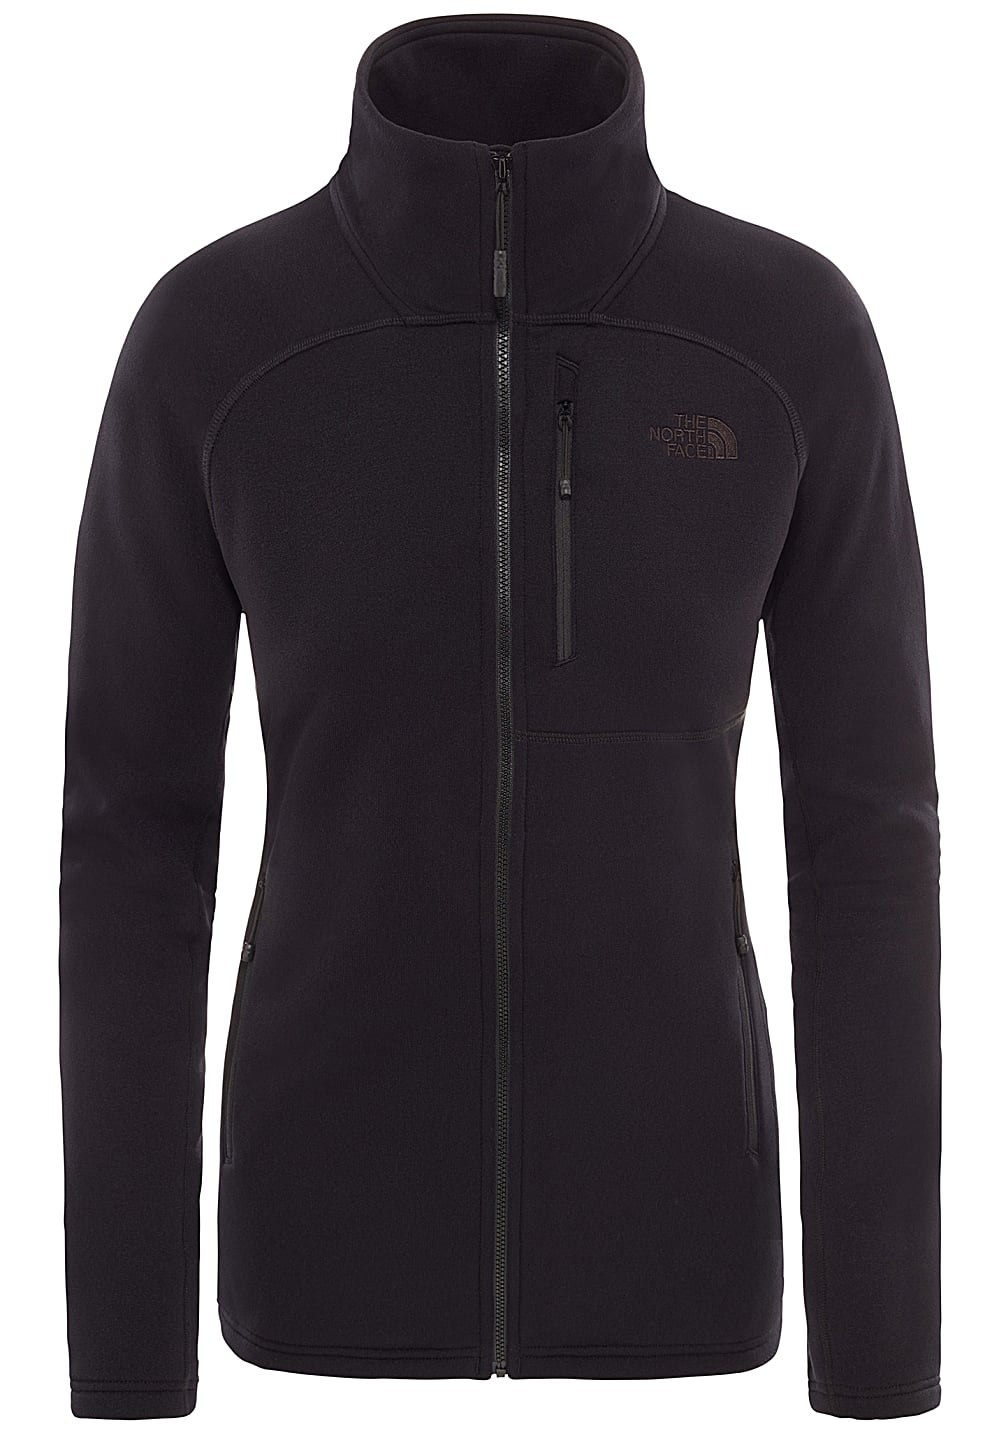 THE NORTH FACE Flx2 Powerstretch Fleece Jacket for Women Black